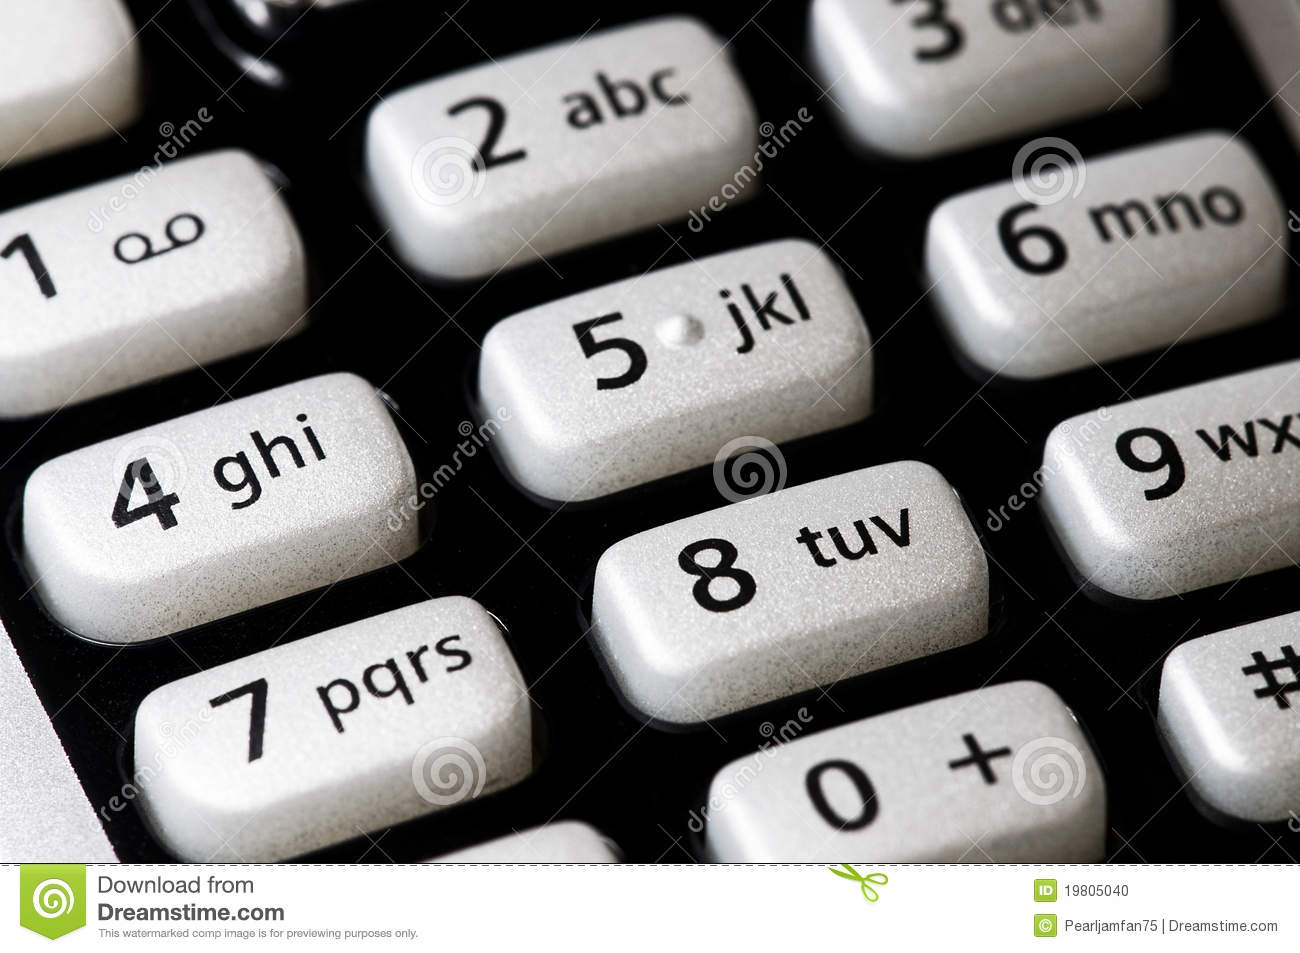 Phone Pad Stock Photo - Image: 19805040